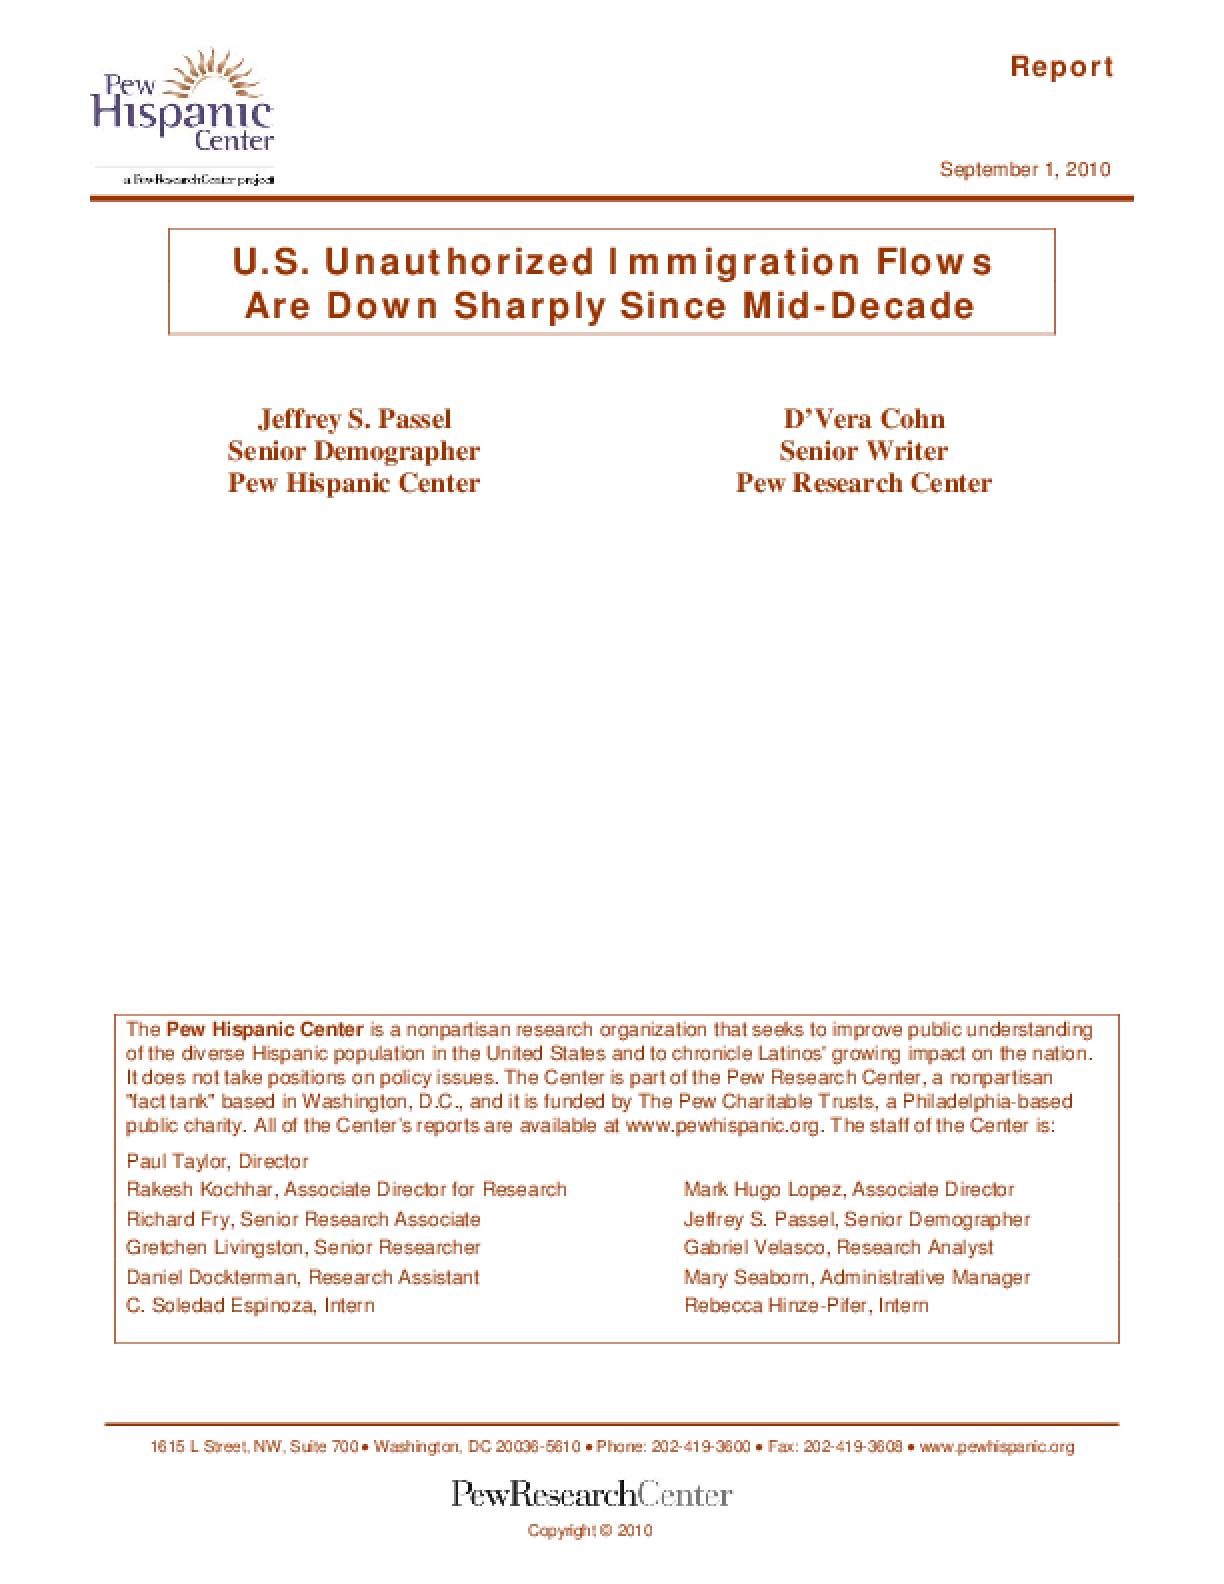 U.S. Unauthorized Immigration Flows Are Down Sharply Since Mid-Decade